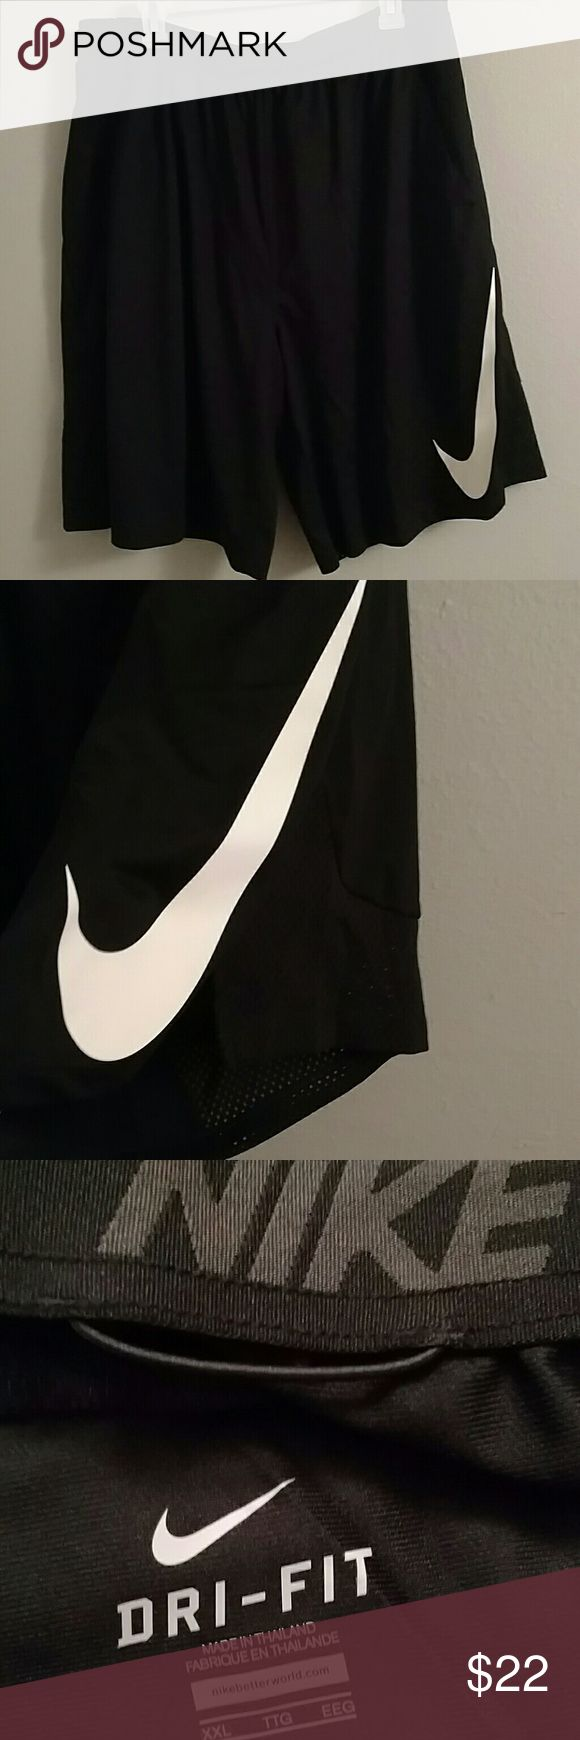 Nike men's shorts Men's basketball shorts. Brand new dri-fit but does not have tags. Has some mesh on the sides on the legs and drawstring! Nike Shorts